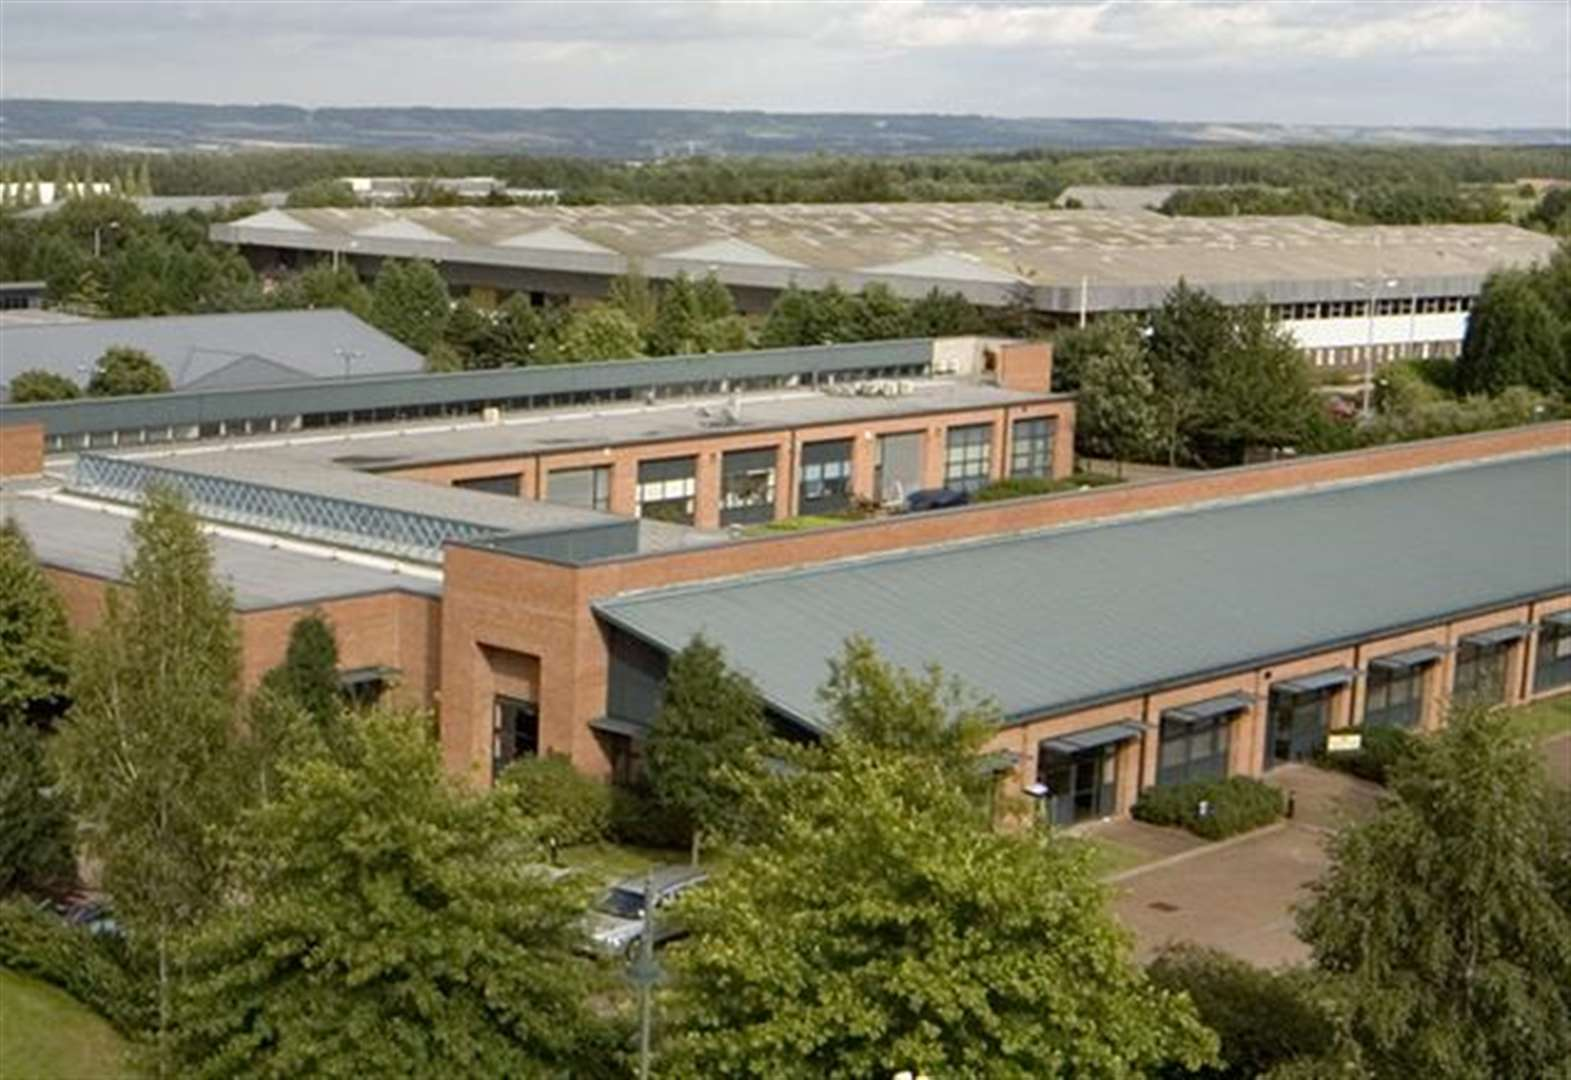 Food giant expands Kent base with new office